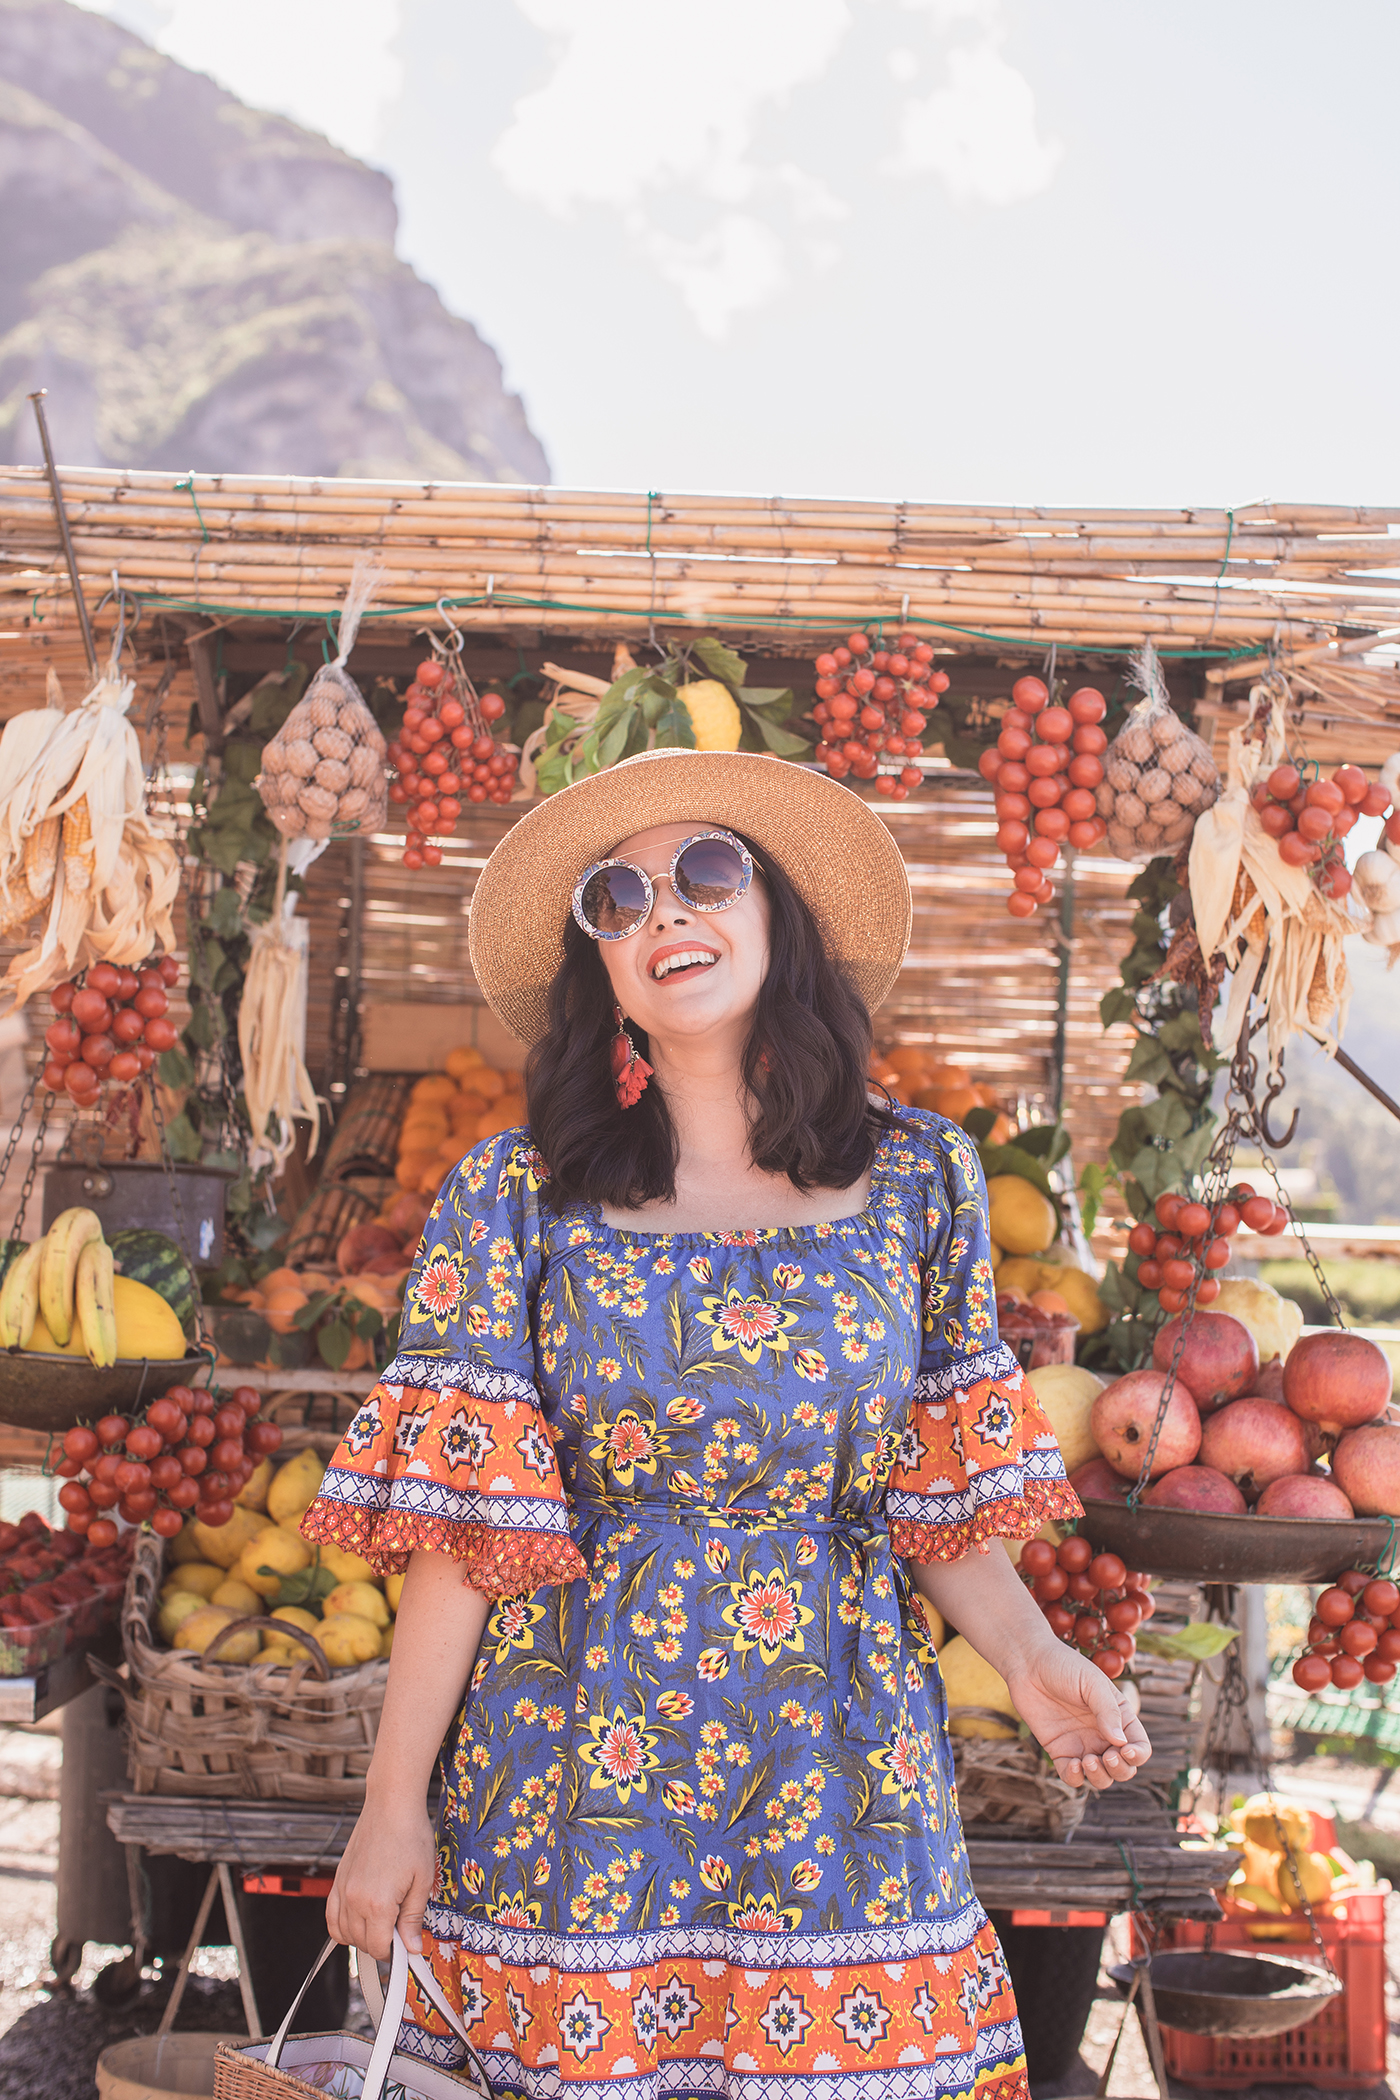 The Perfect Travel Dress in Positano